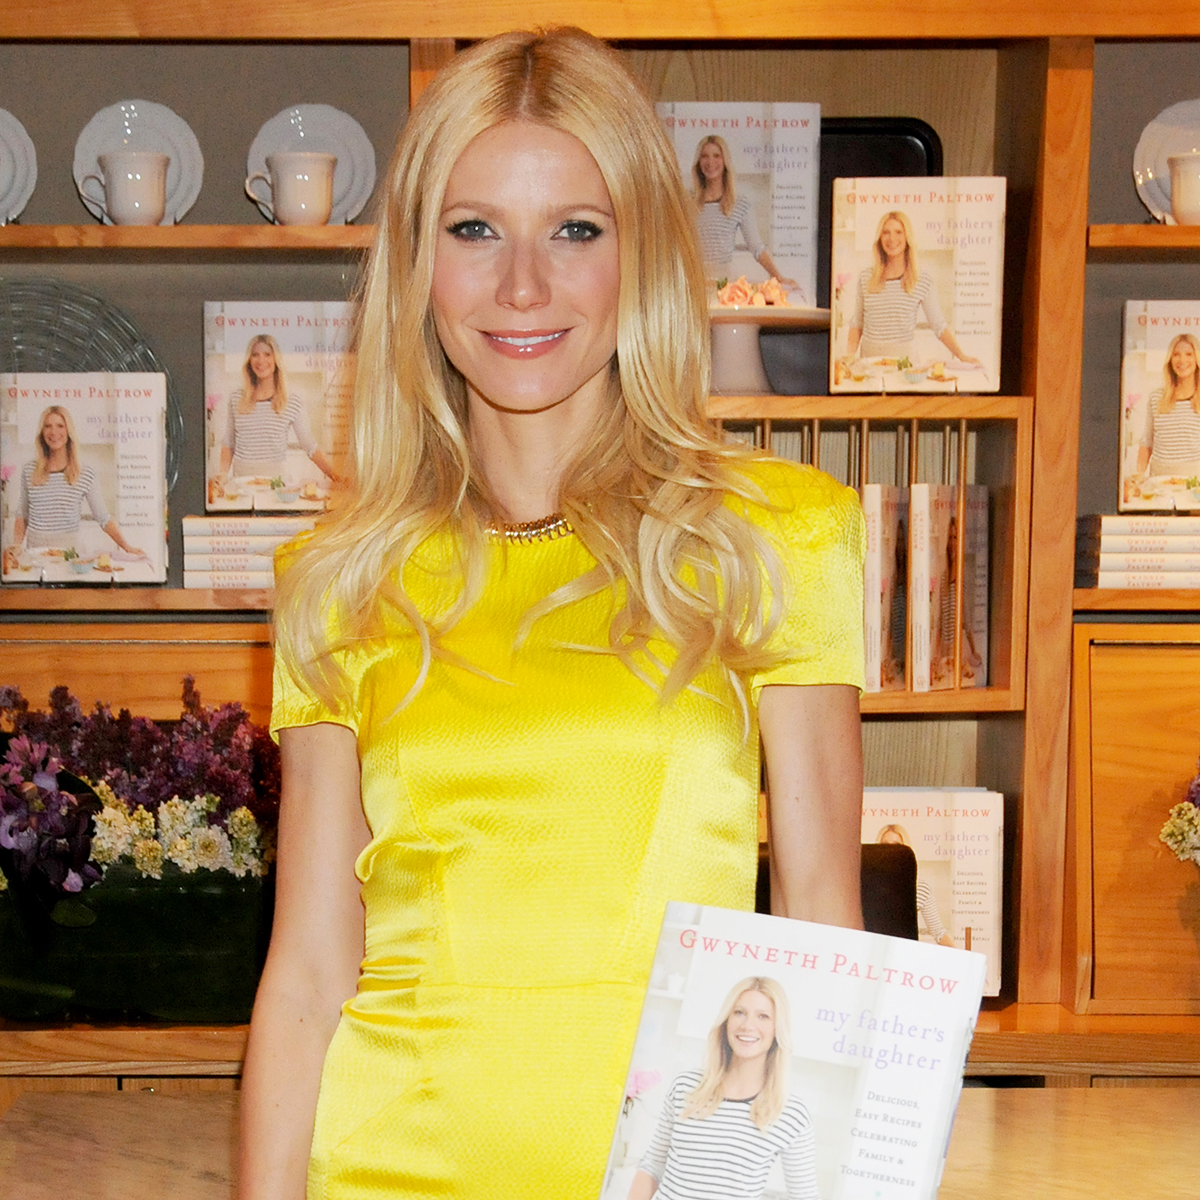 Food Safety Experts Are Not Pleased with Gwyneth Paltrow's Cookbooks